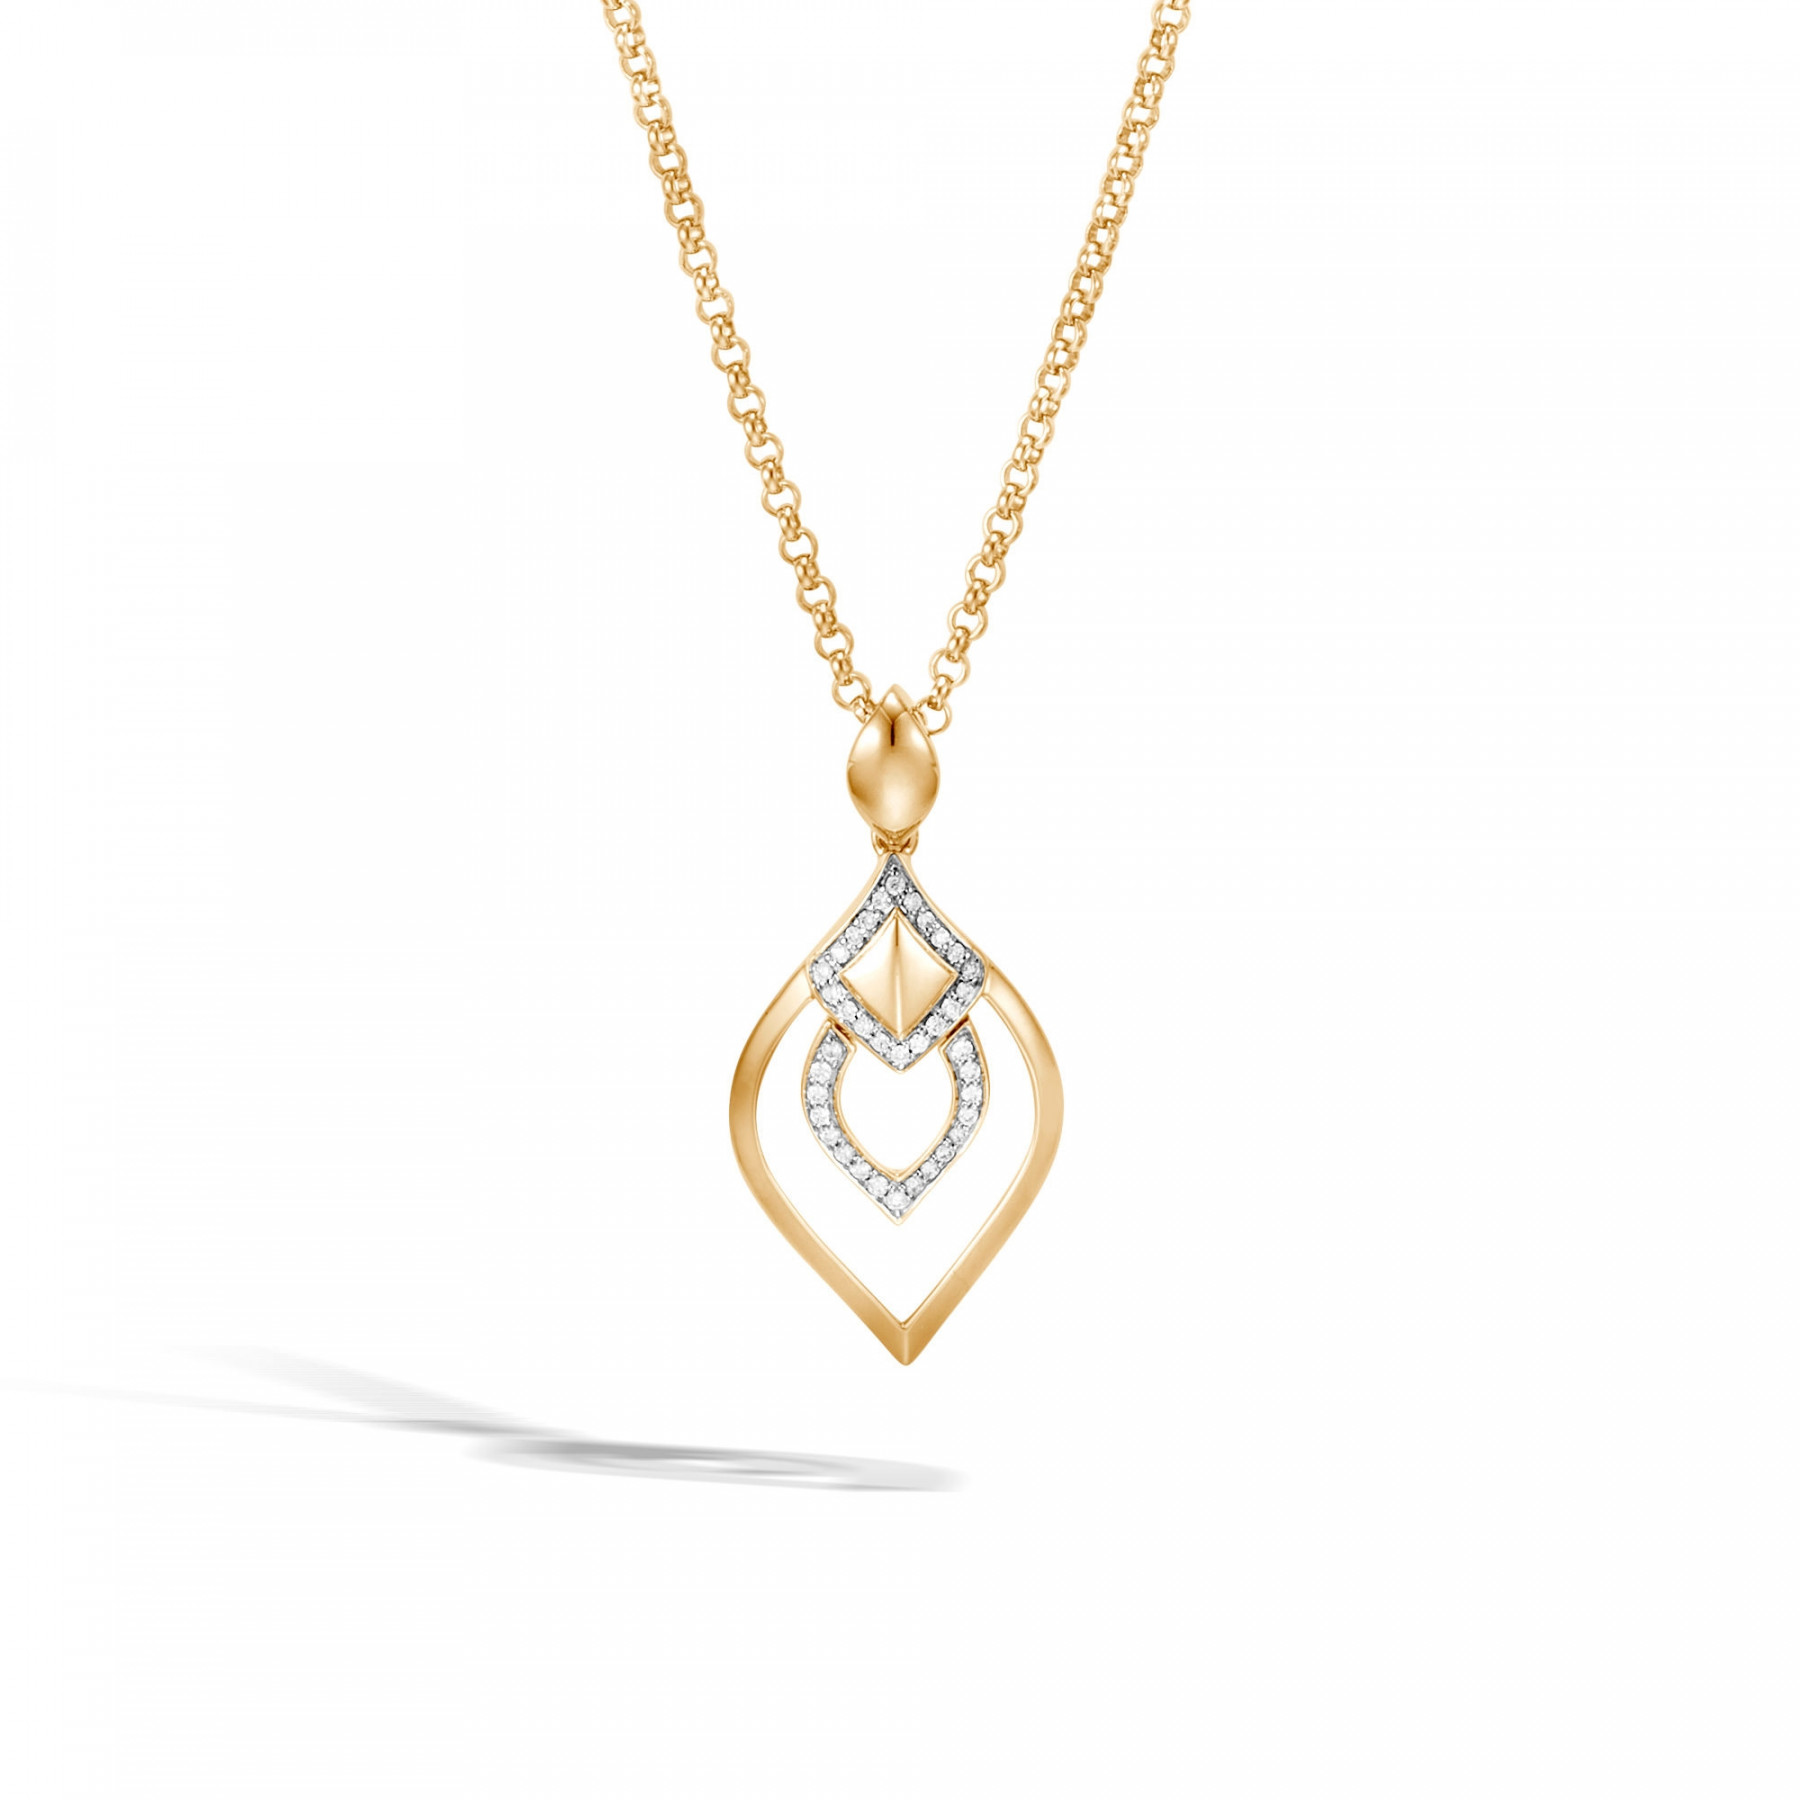 John Hardy Legends Naga Diamond Pendant Necklace in 18k Yellow Gold front view